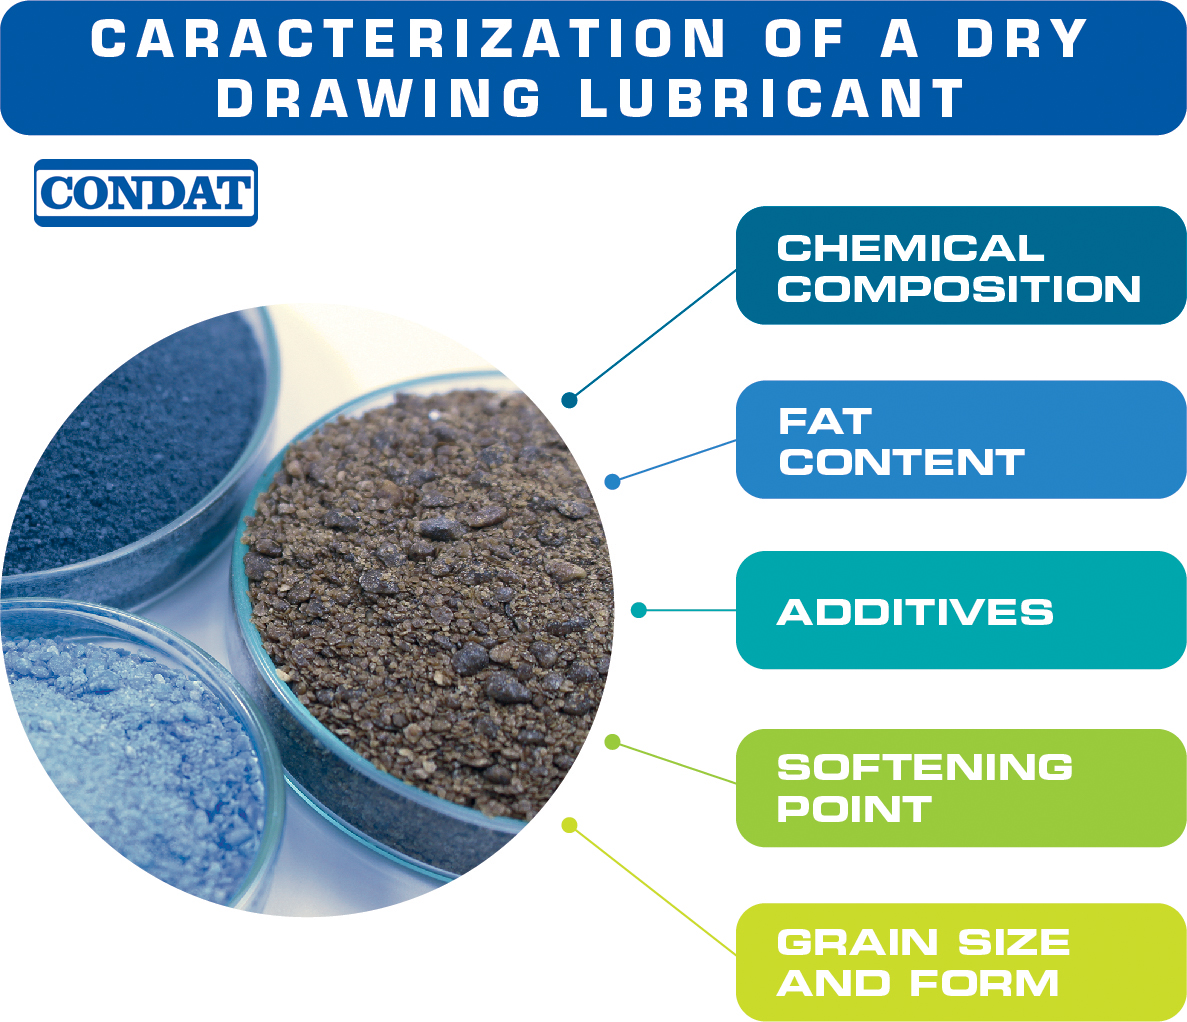 CARACTERIZATION OF A DRY DRAWING LUBRICANT